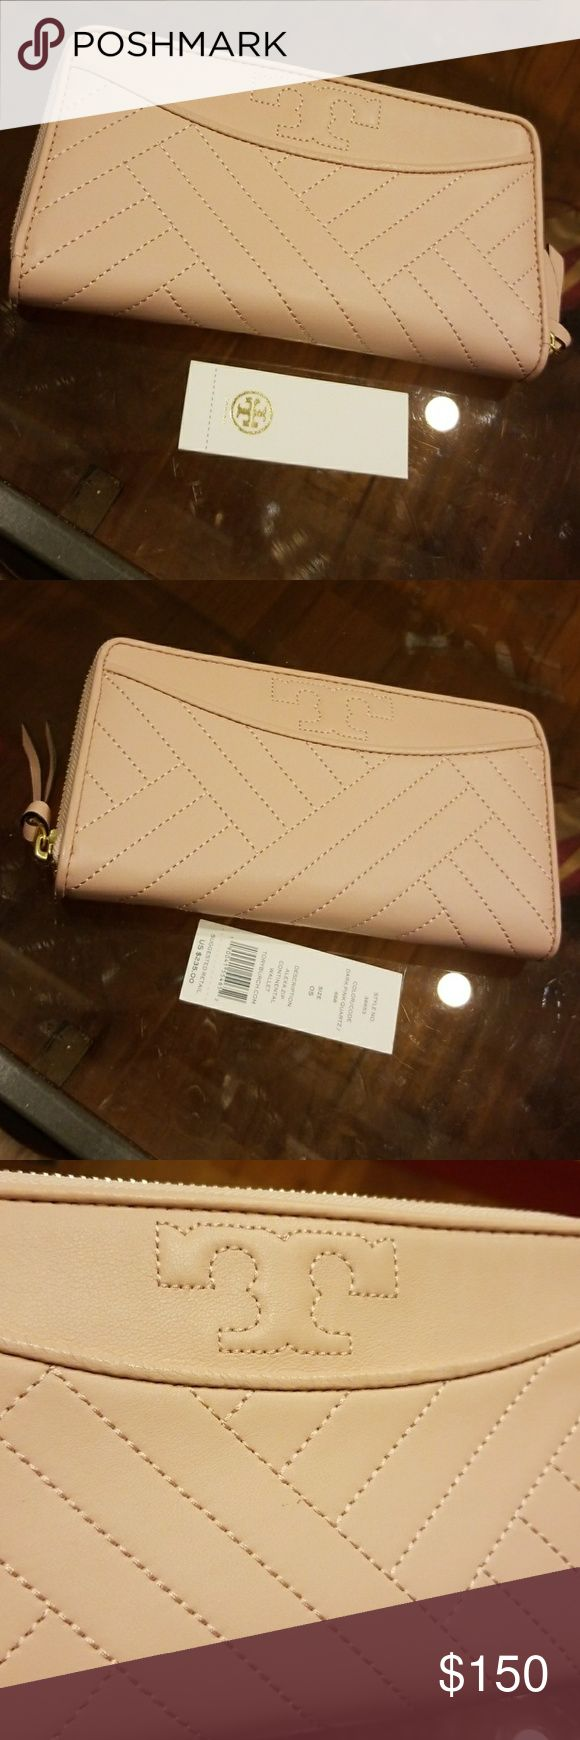 Alexa Zip Continental Wallet Preloved with tag Great condition! Dark Pink Quartz Tory Burch Bags Wallets